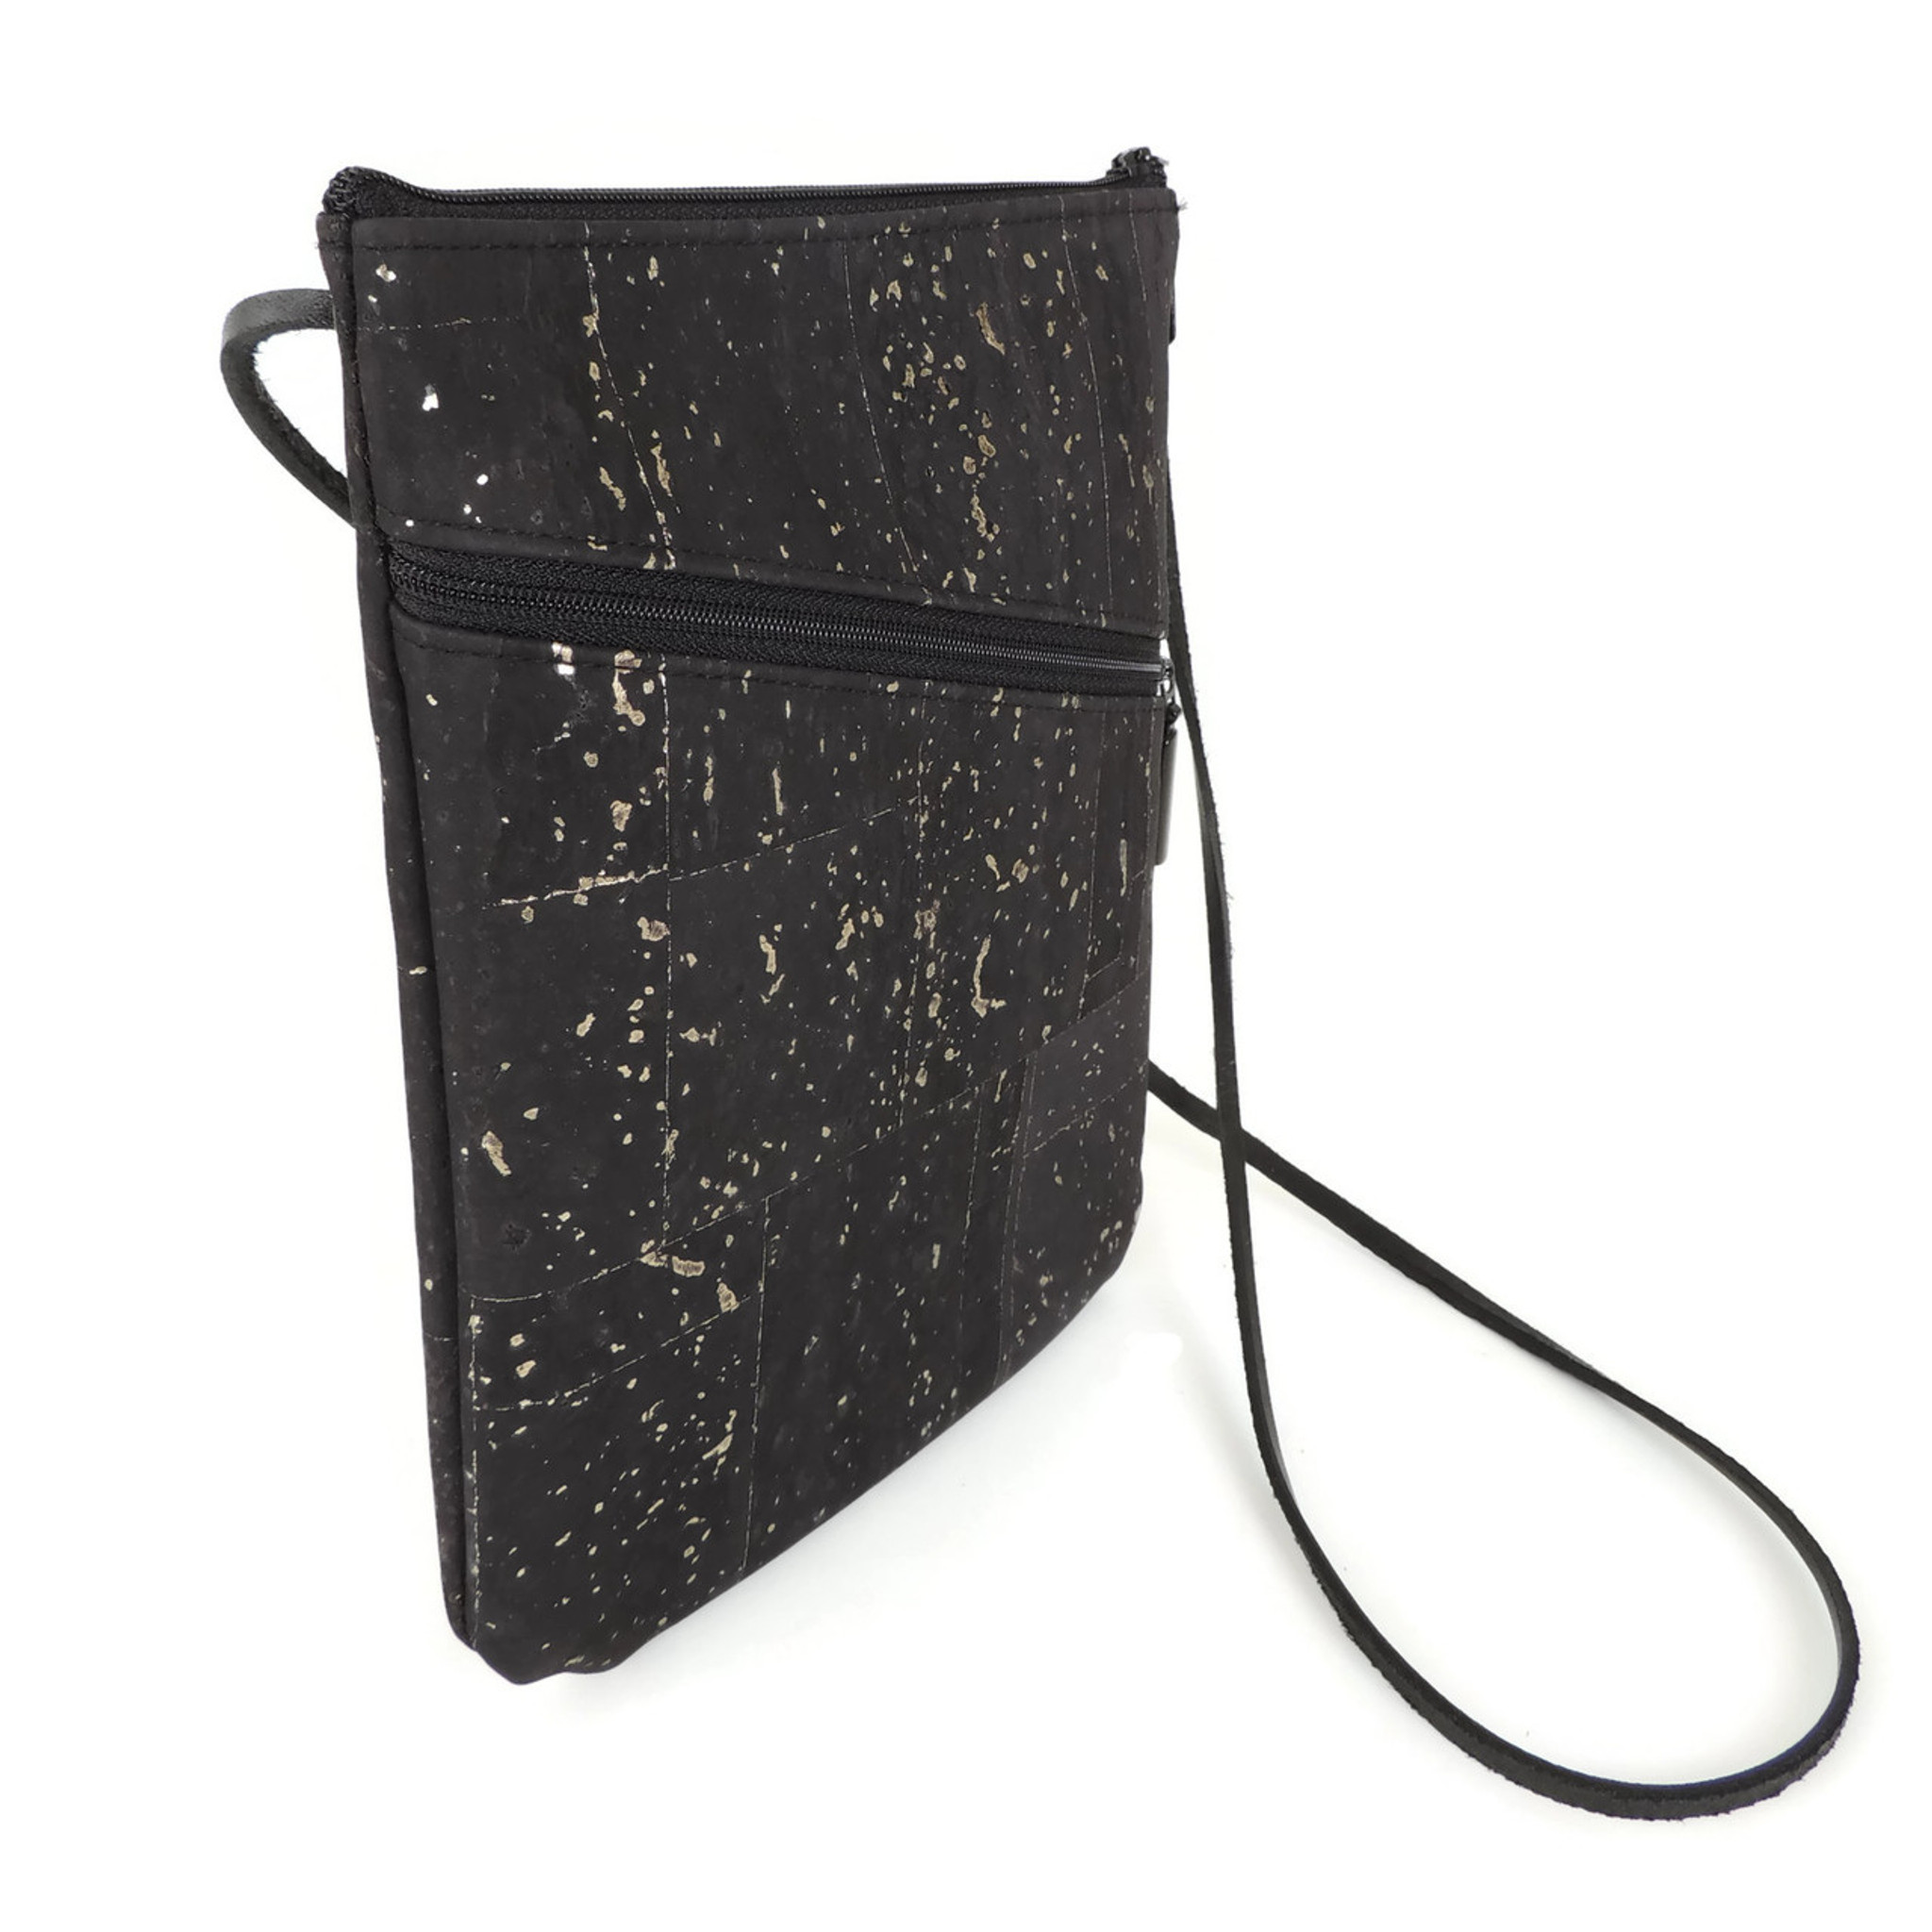 Social Bag in Black and Gold Cork